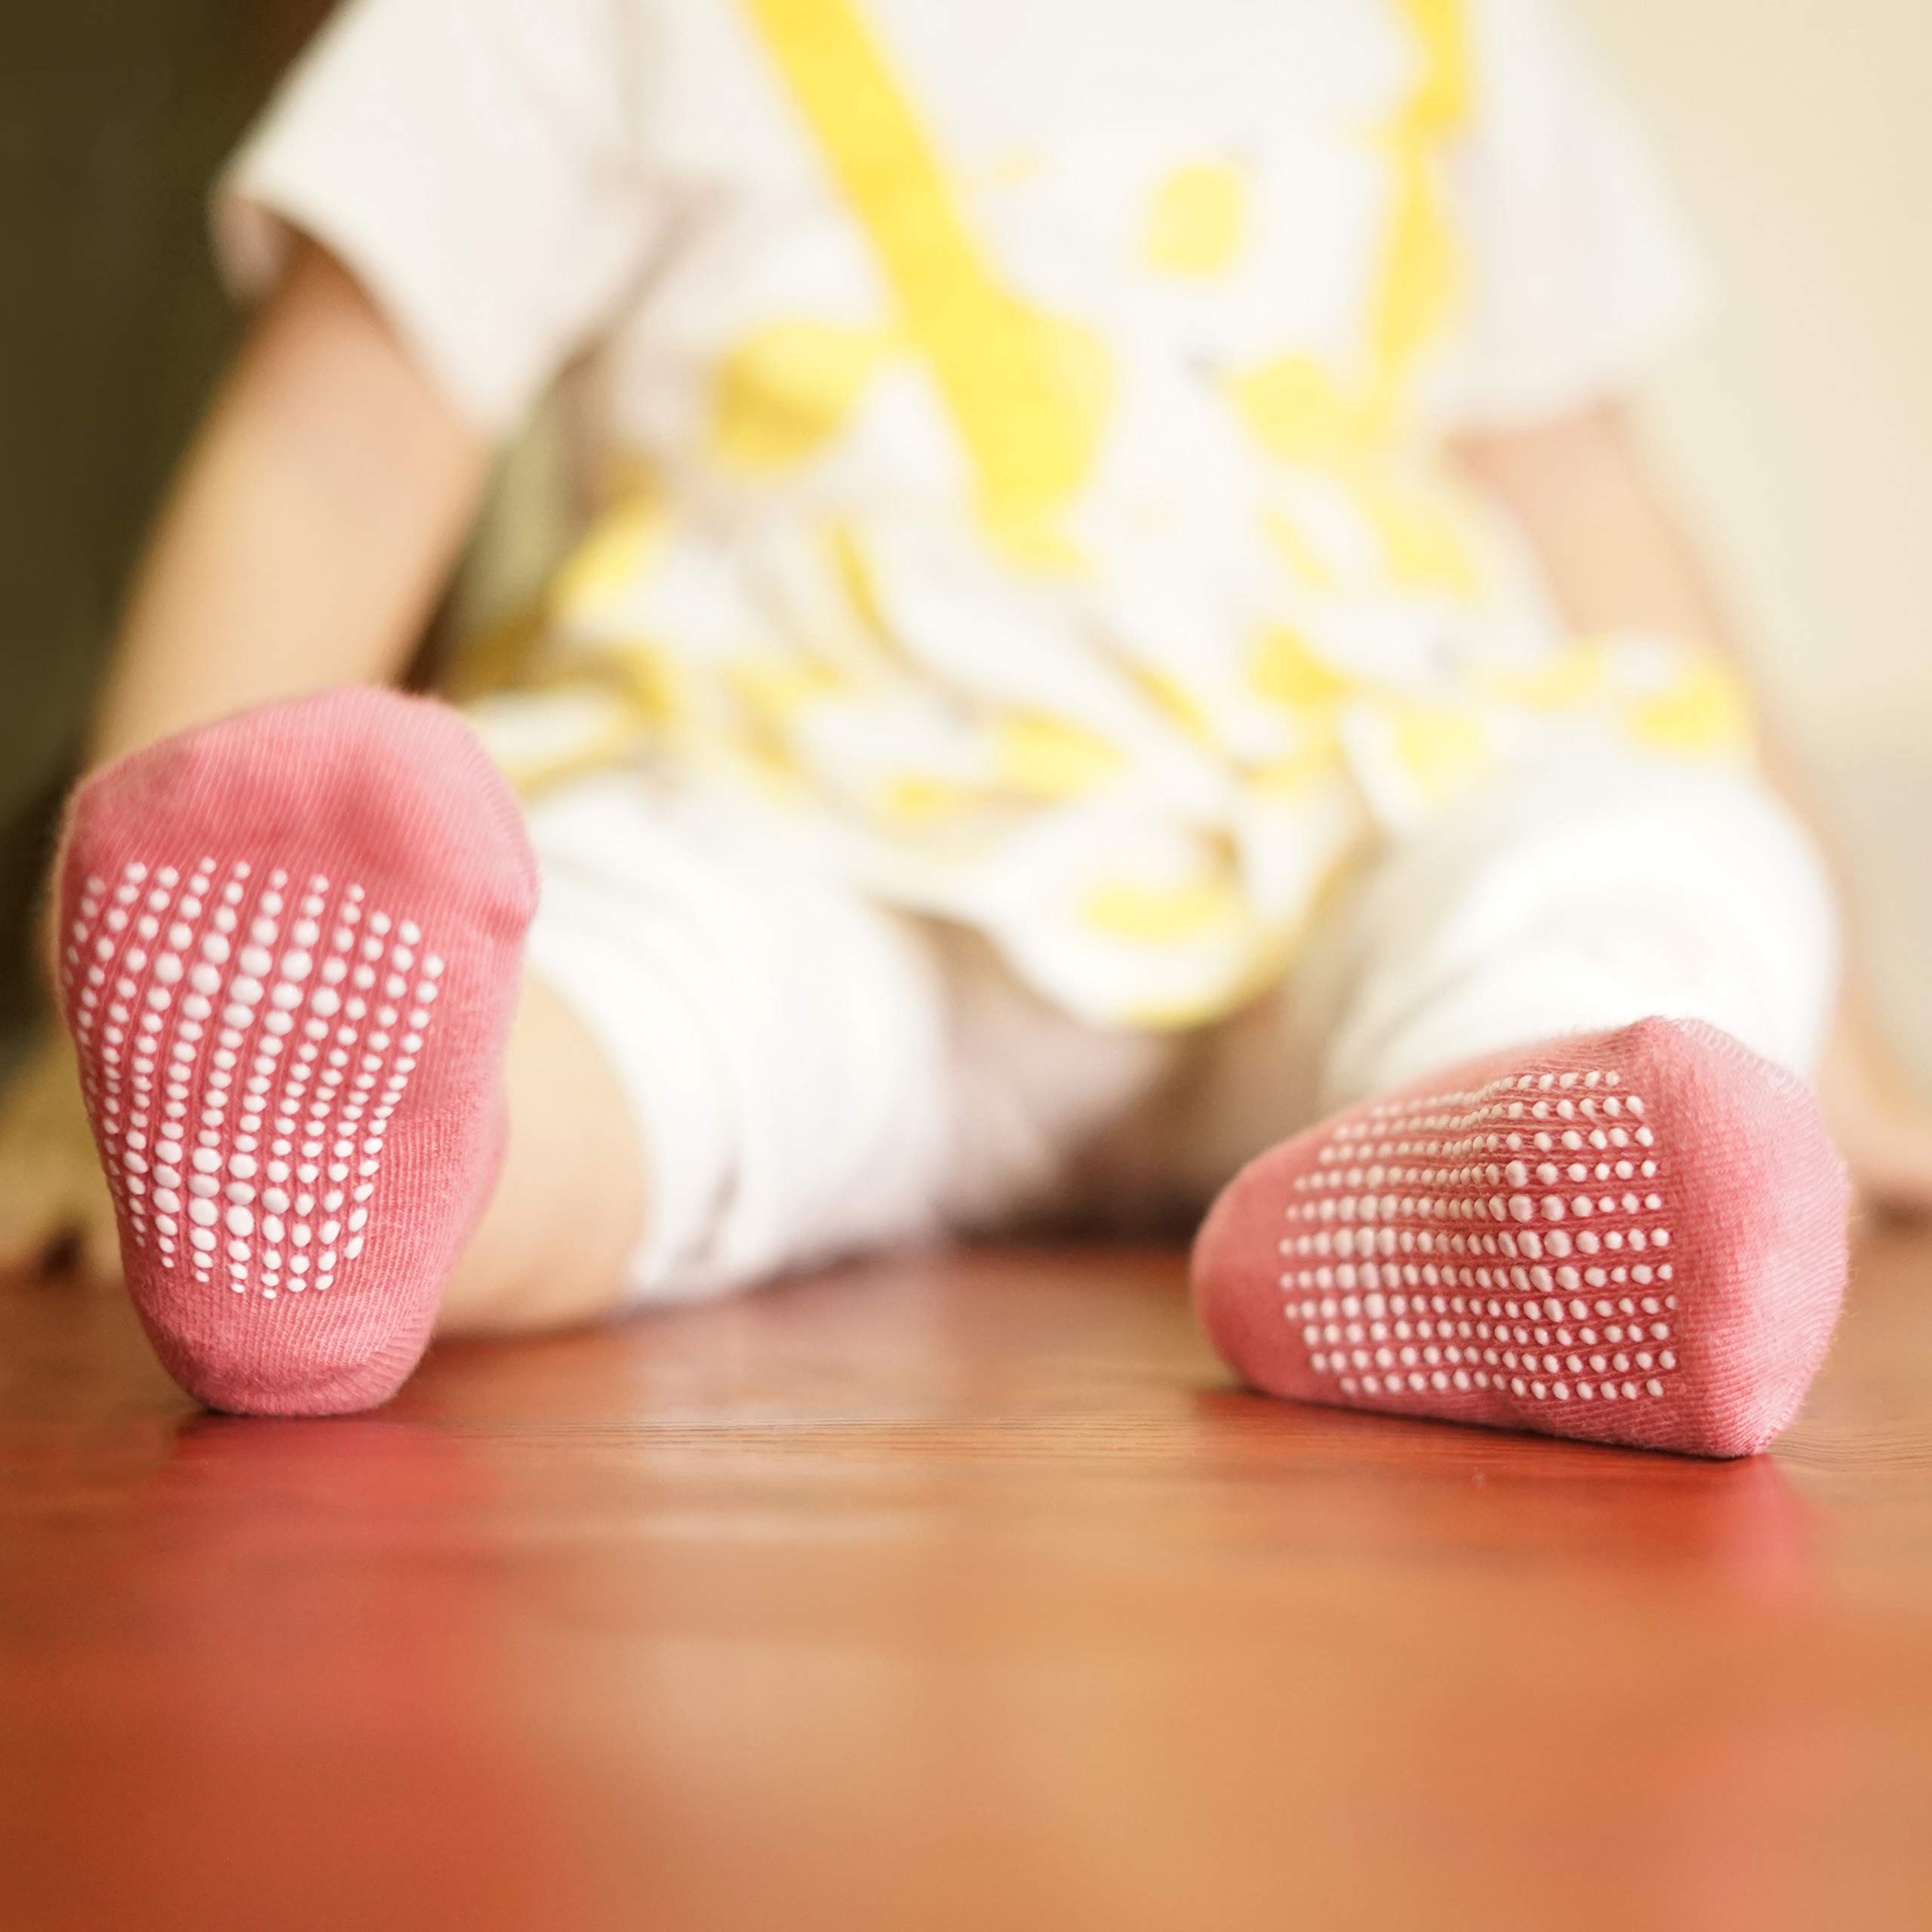 CozyWay Baby Grip Ankle Socks - Pairs of 12 - Non Slip Anti Skid Baby Infants Toddlers Boys Girls Unisex